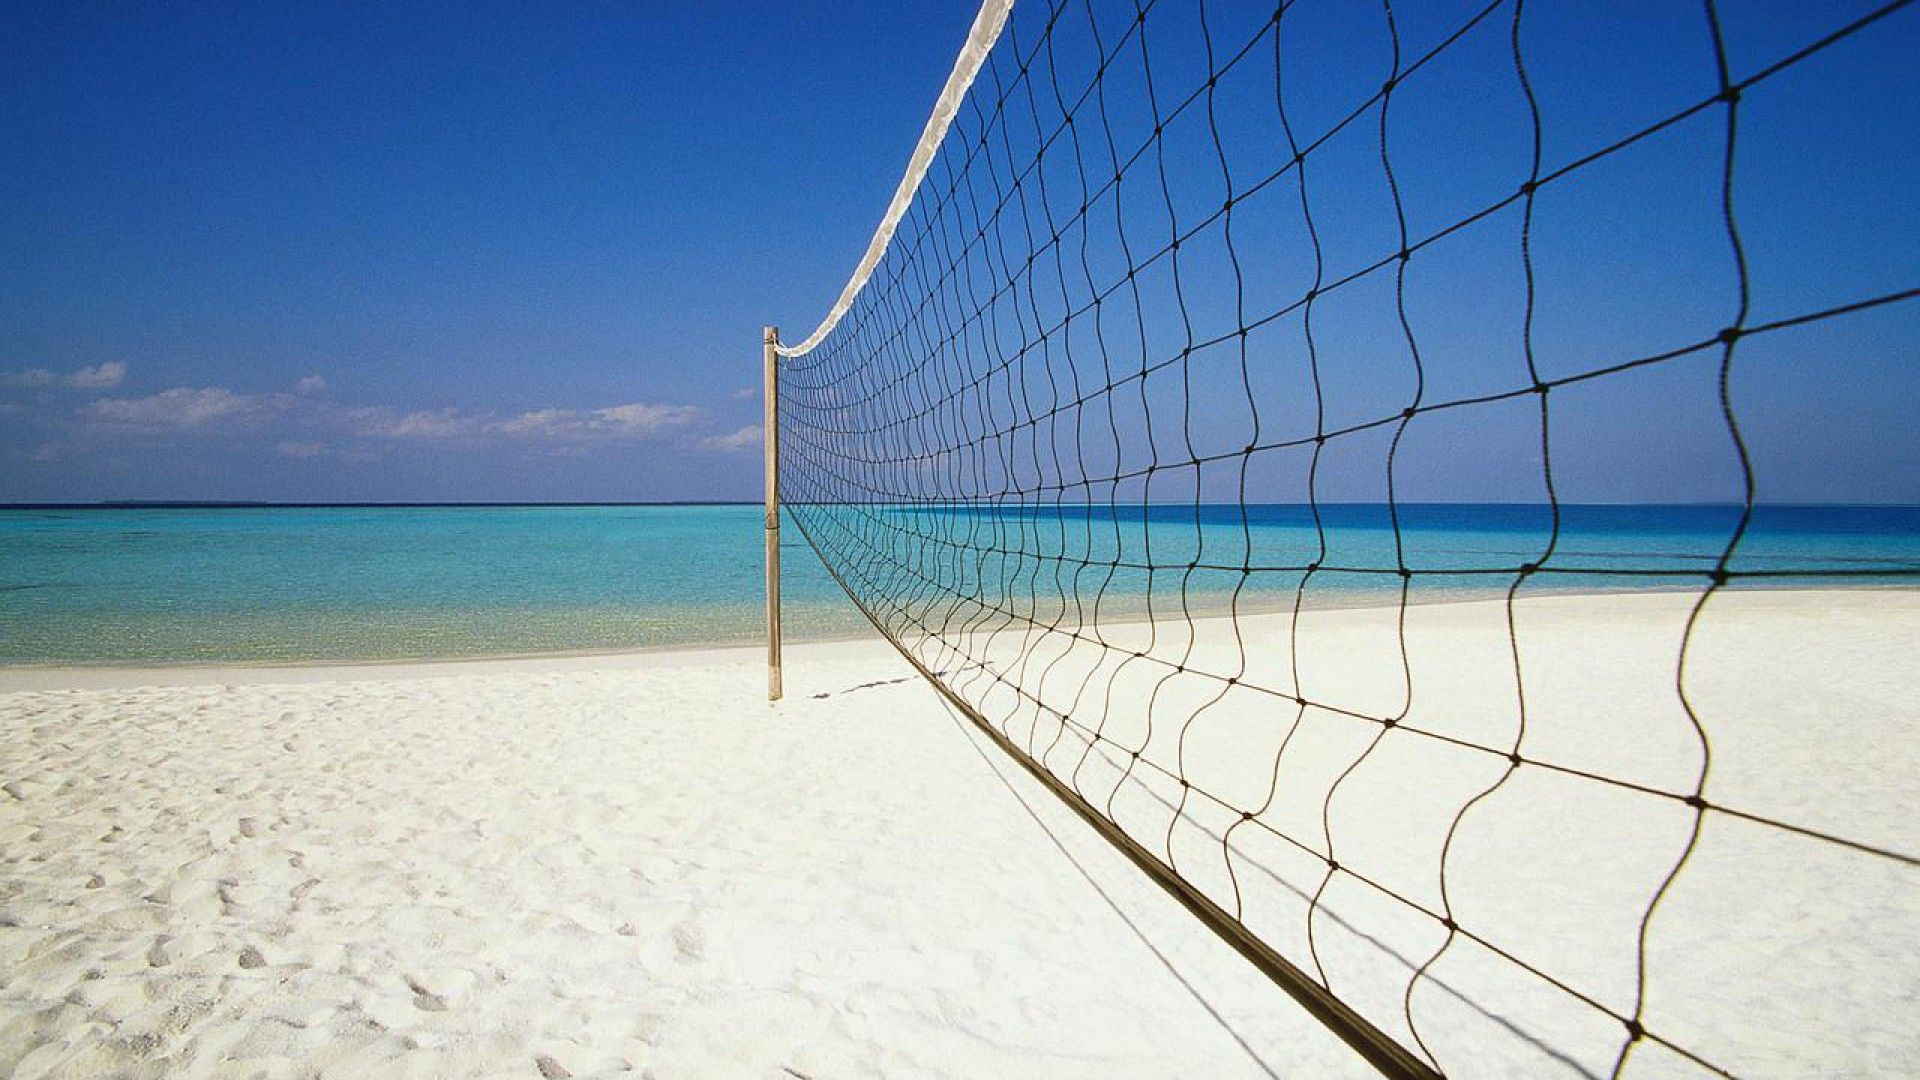 Desktop Volleyball Wallpapers Volleyball Wallpaper Volleyball Backgrounds Volleyball